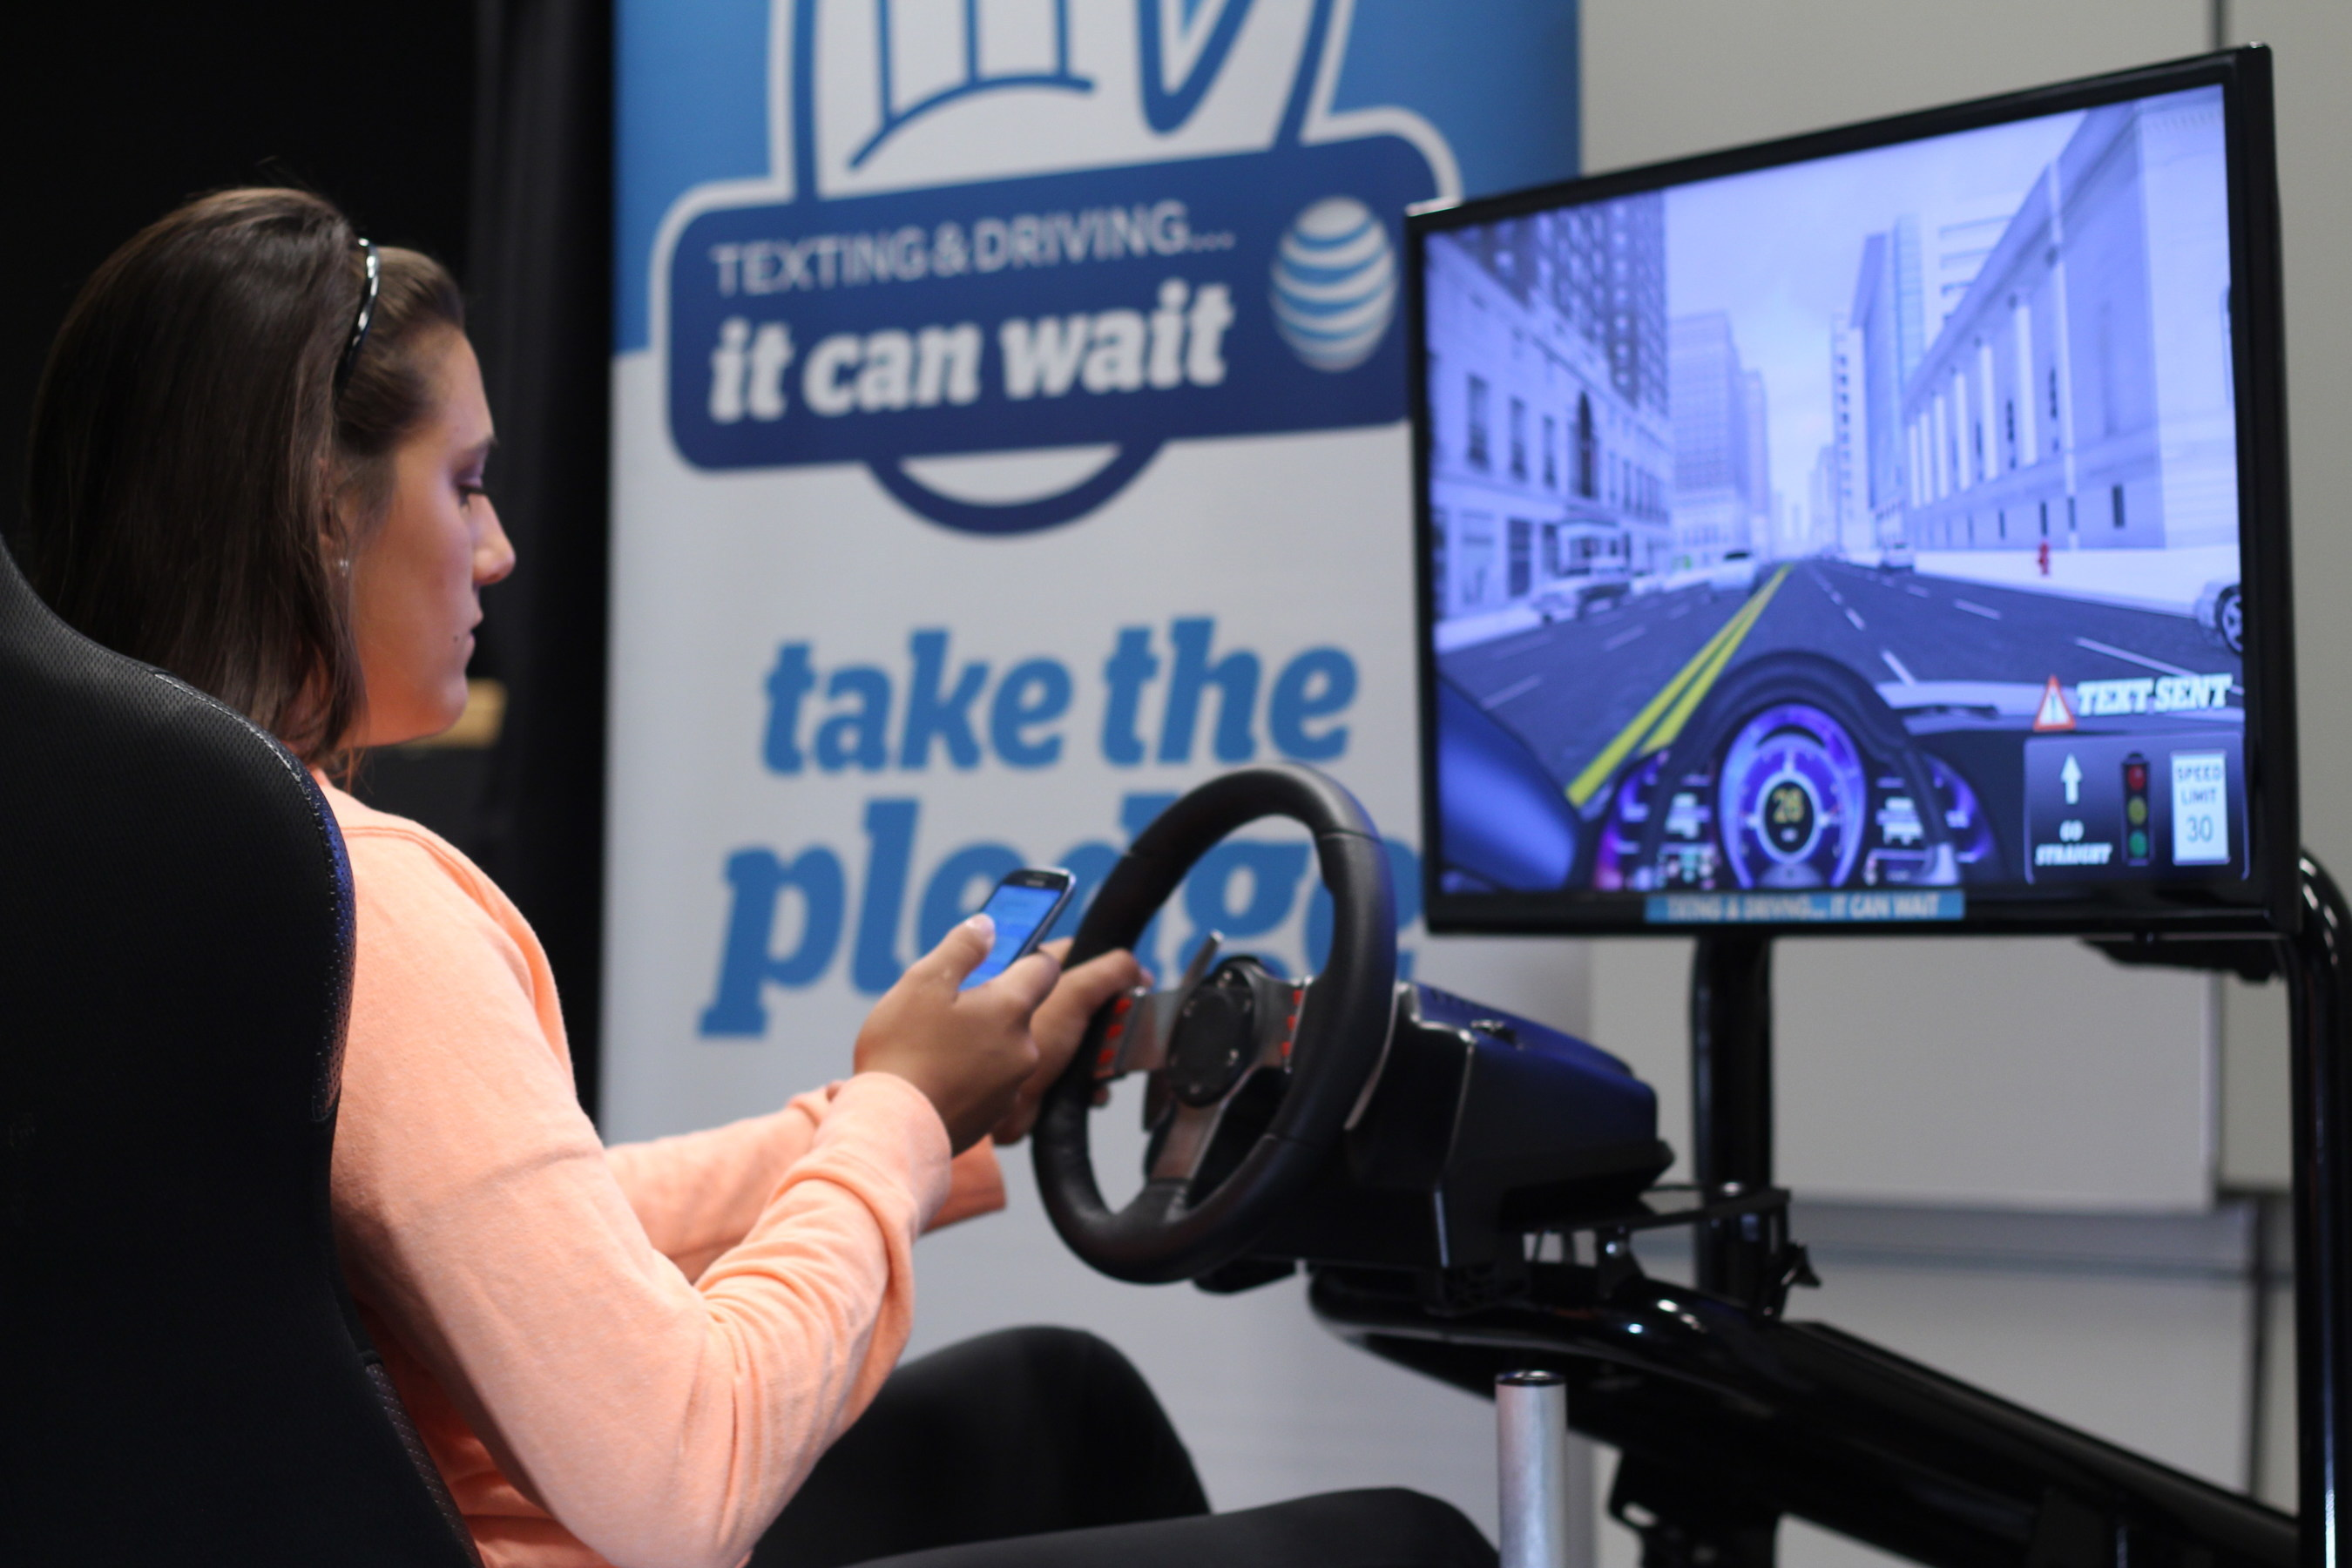 AT&T Brings State-Of-The-Art Simulator To Northern California In Effort To End Texting And Driving